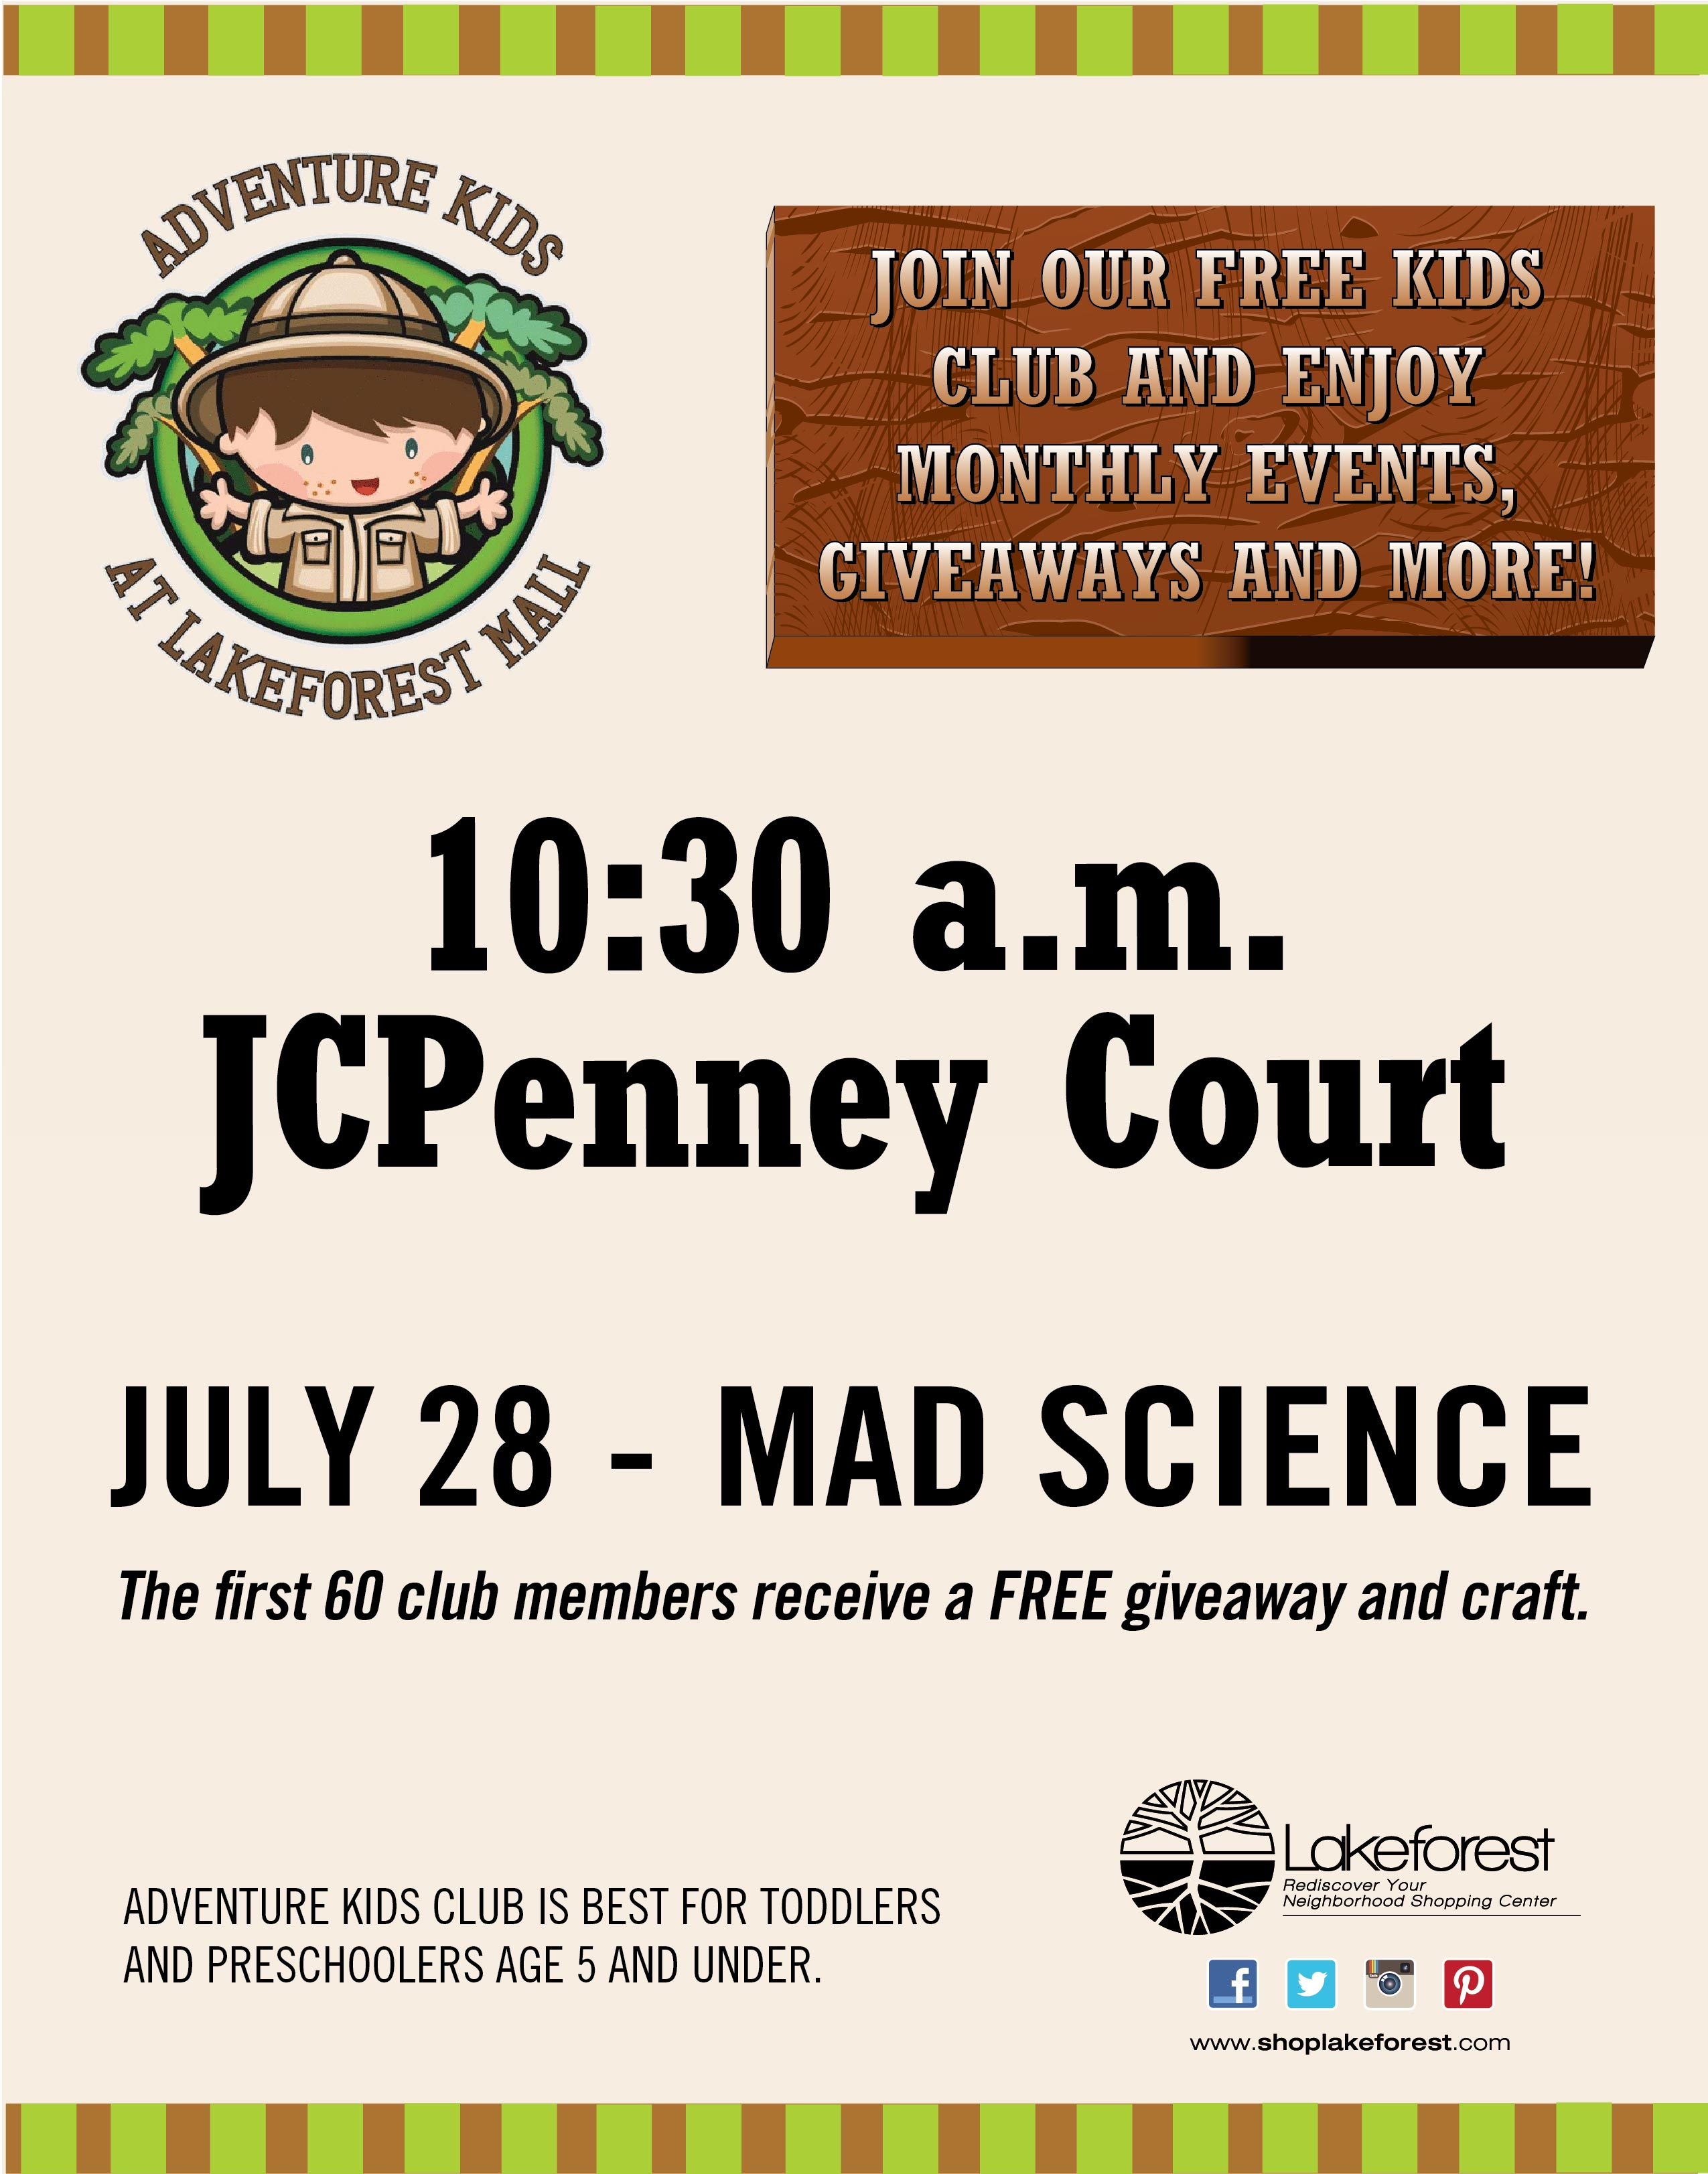 Thursday, July 28th, 2016 -- FREE kids event